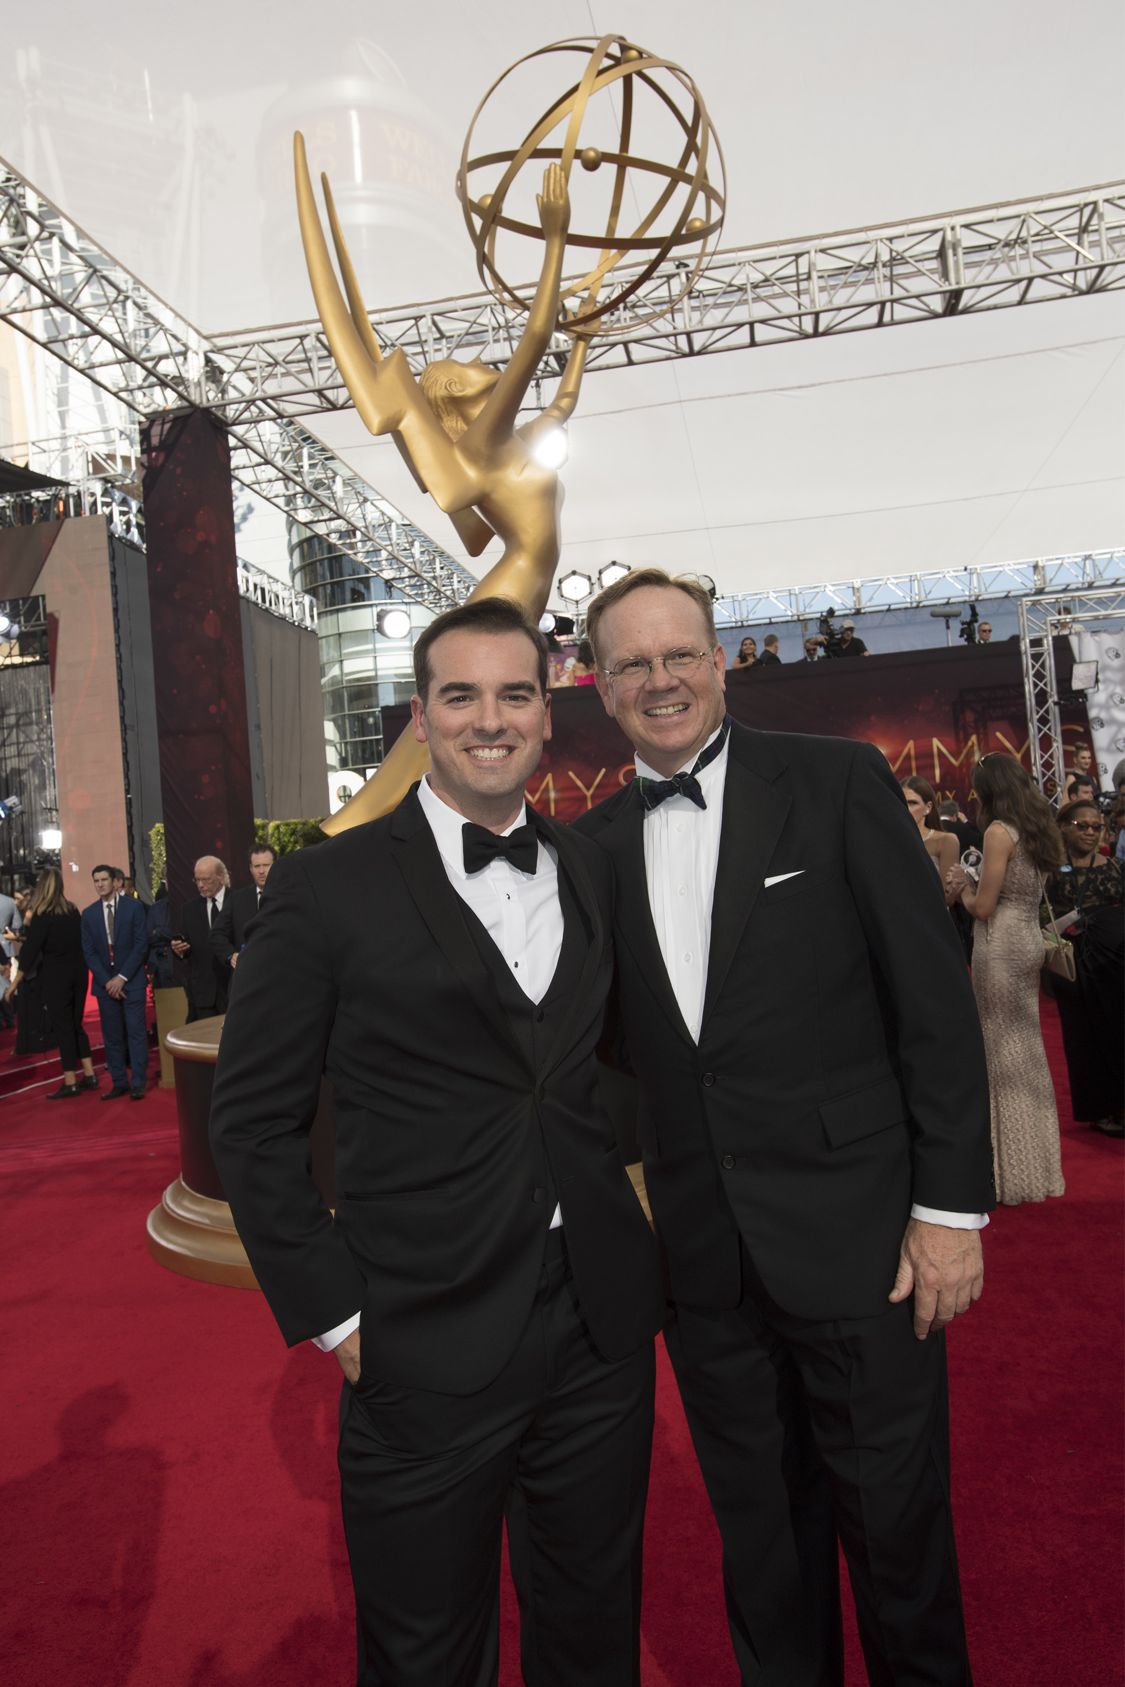 """THE 68TH EMMY(r) AWARDS - """"The 68th Emmy Awards"""" broadcasts live from The Microsoft Theater in Los Angeles, Sunday, September 18 (7:00-11:00 p.m. EDT/4:00-8:00 p.m. PDT), on ABC and is hosted by Jimmy Kimmel. (ABC/Image Group LA) JEFF MEACHAM, PETER MACKENZIE"""